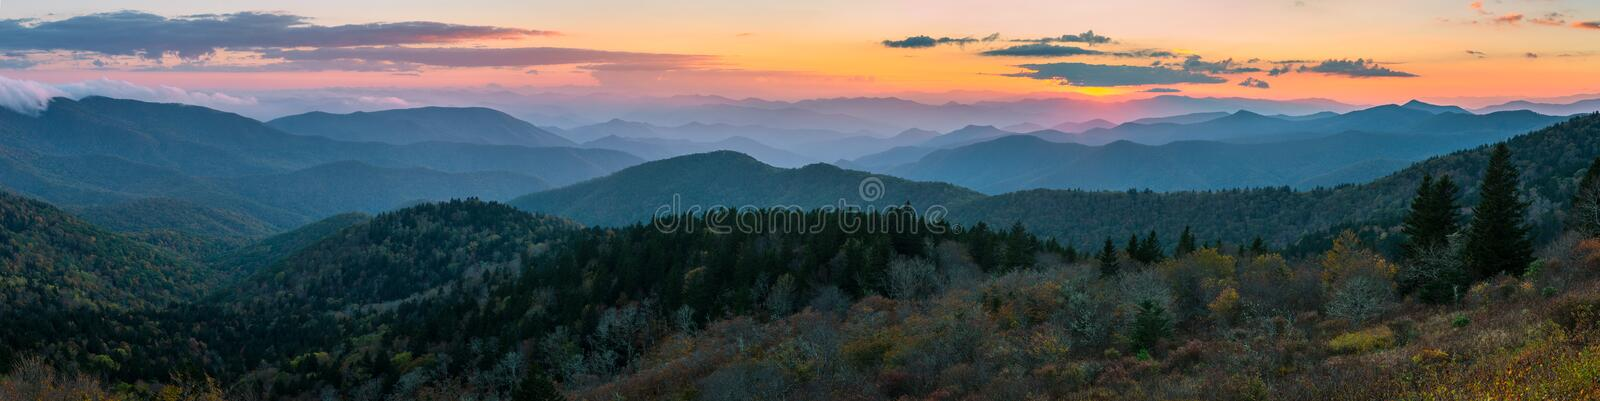 Scenic sunset, Blue Ridge Mountains, North Carolina royalty free stock image